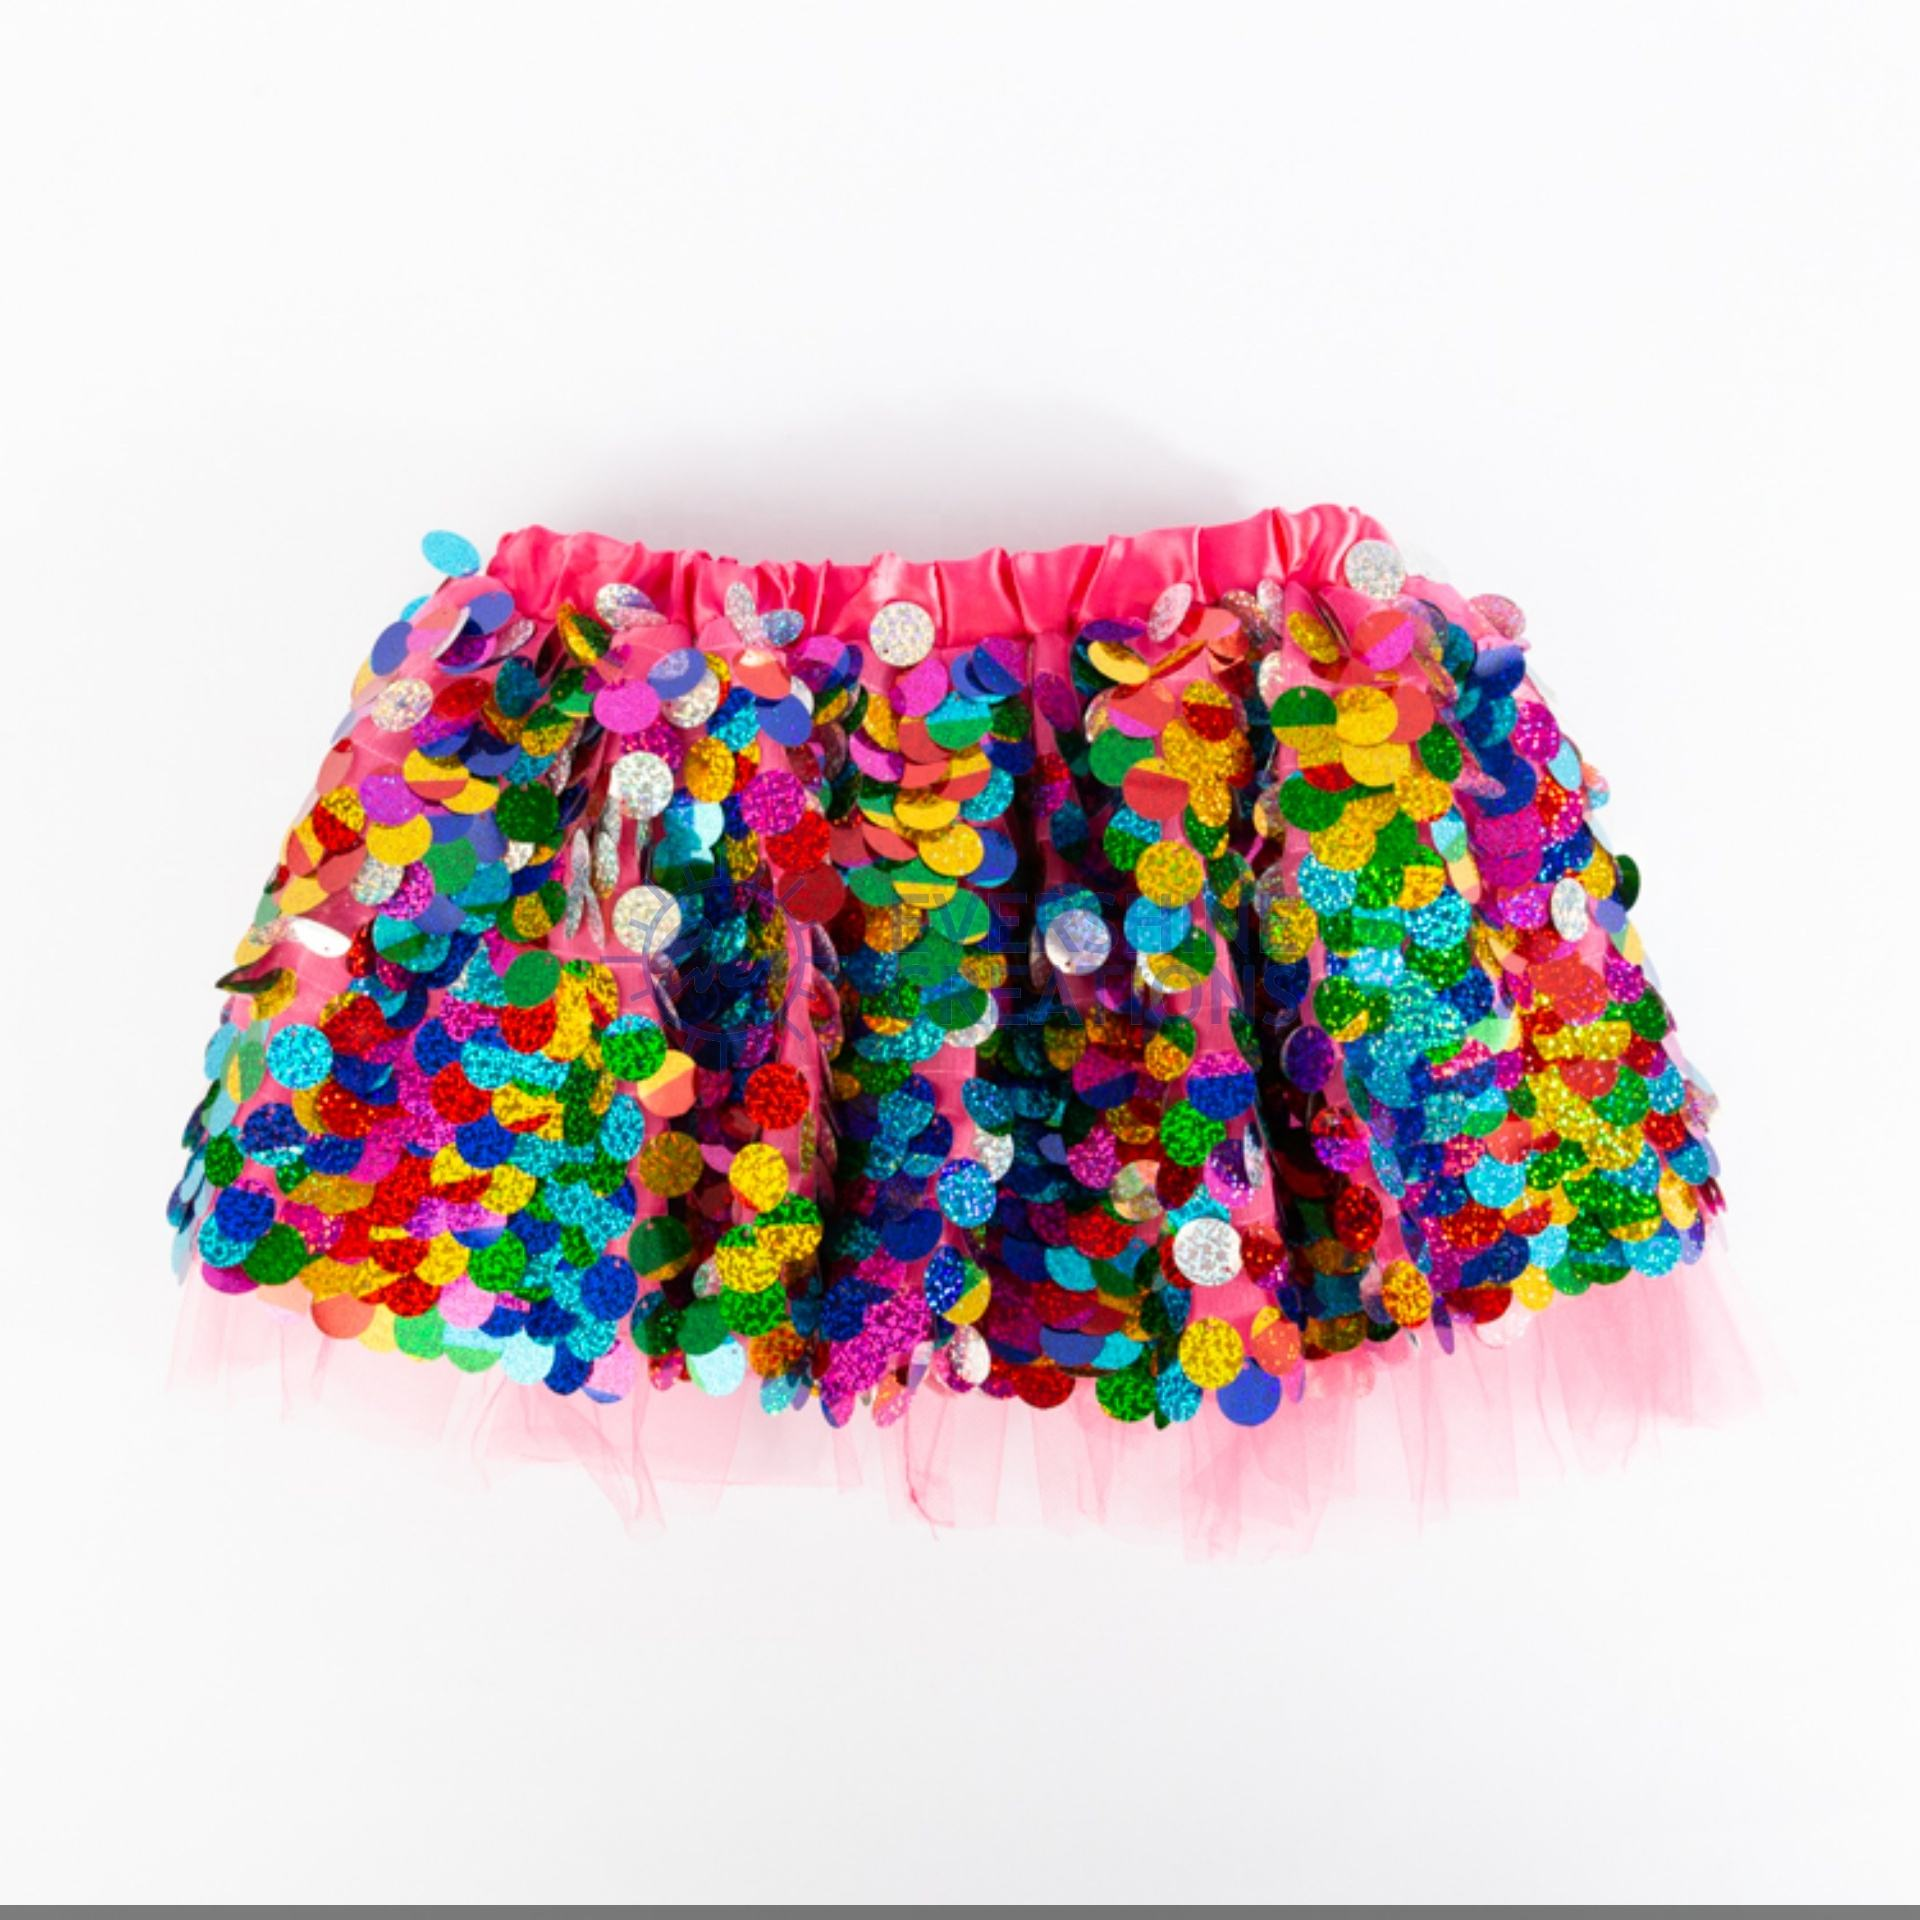 CARNIVAL FESTIVAL NOVELTY ACCESSORIES CHIFFON SKIRT WITH COLORFUL SEQUINS- BOTTOM COSTUME